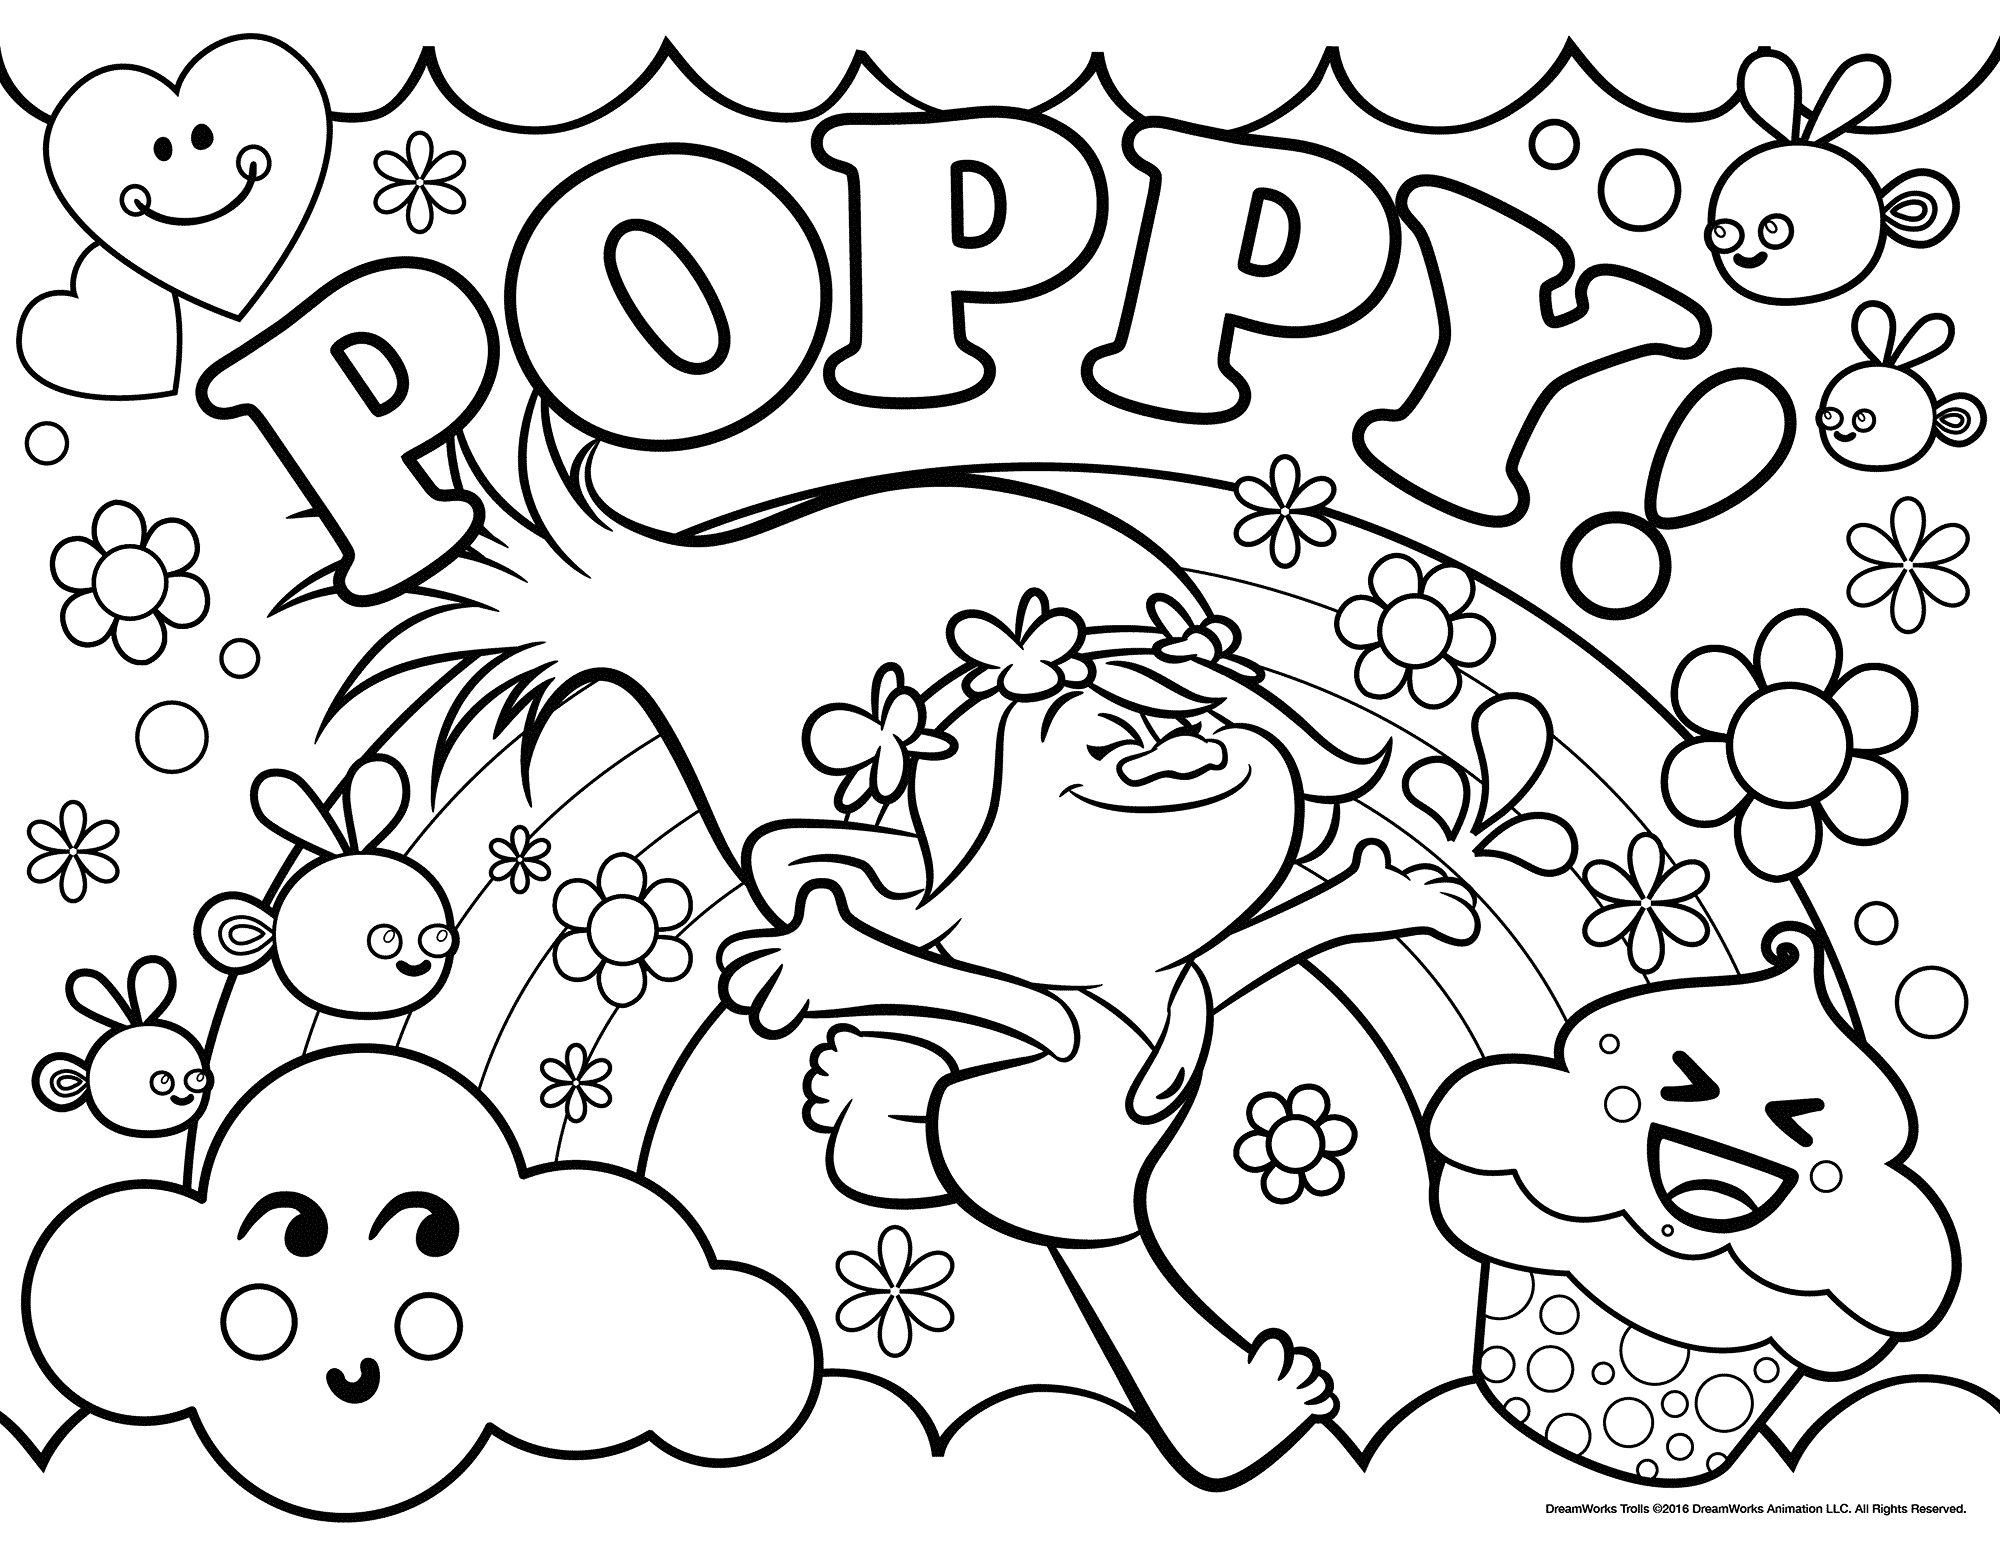 Trolls Movie Coloring Pages - Best Coloring Pages For Kids - Free Printable Troll Coloring Pages